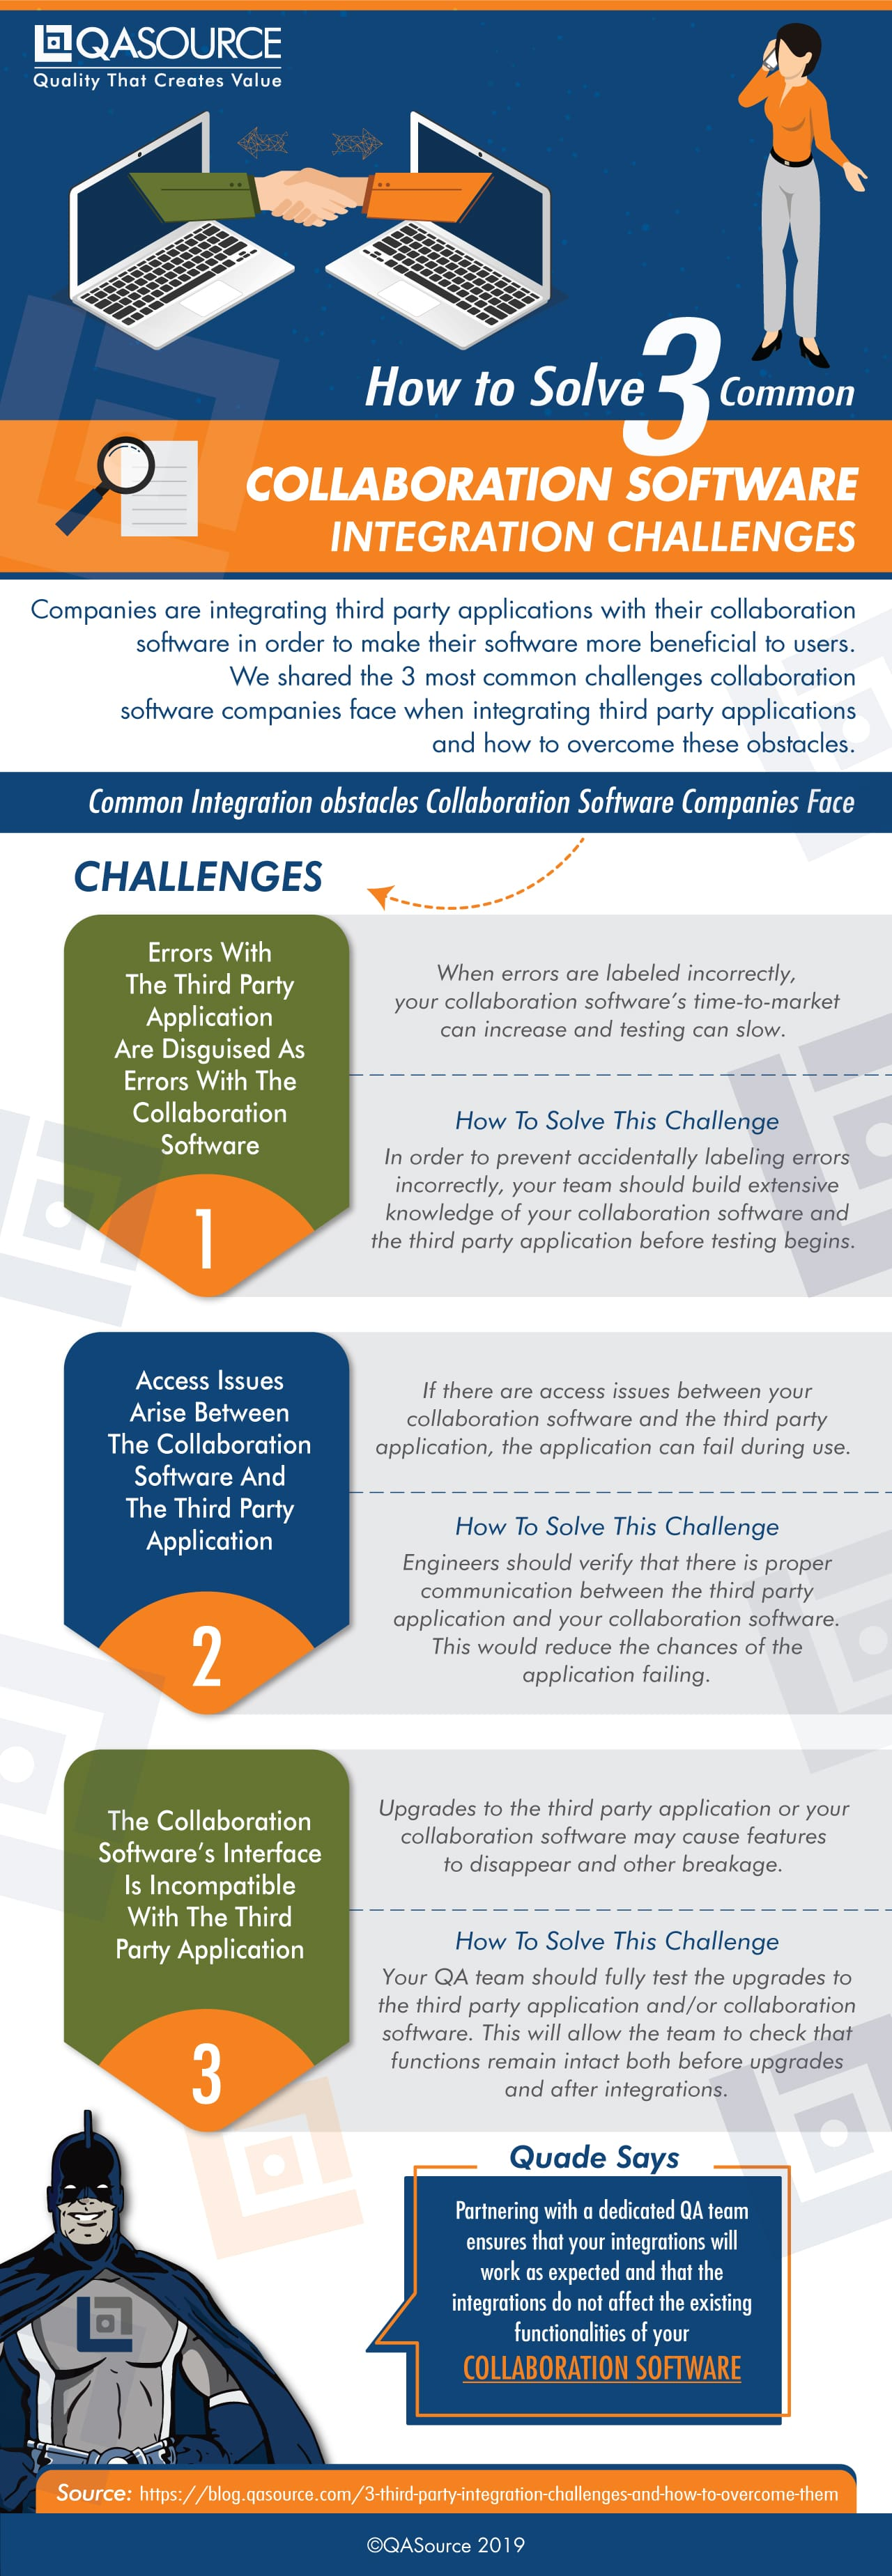 Get The Best Tips On How To Solve 3 Common Collaboration Software Integration Challenges